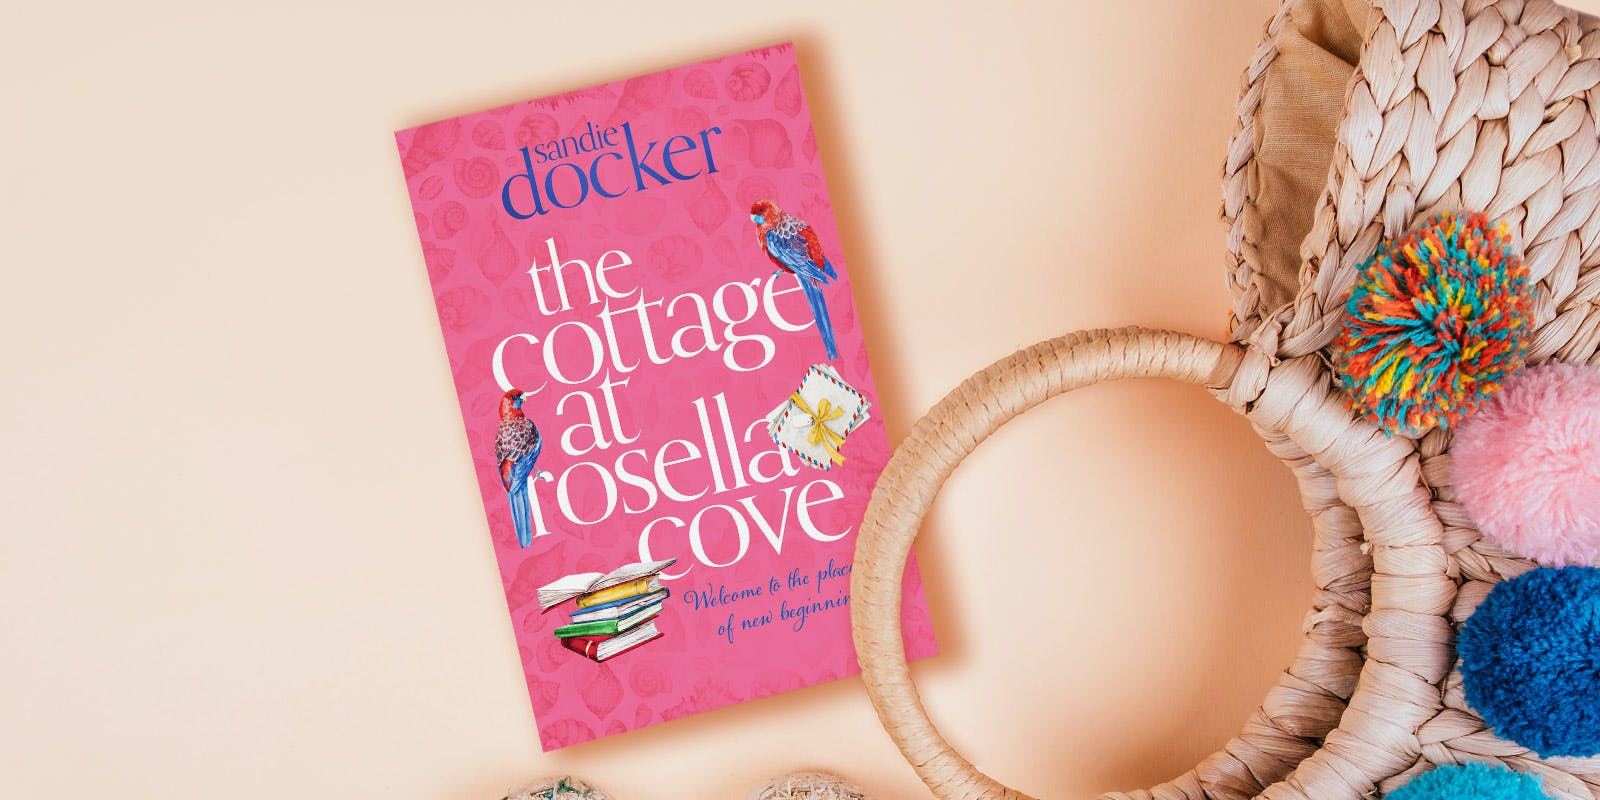 The Cottage at Rosella Cove book club notes